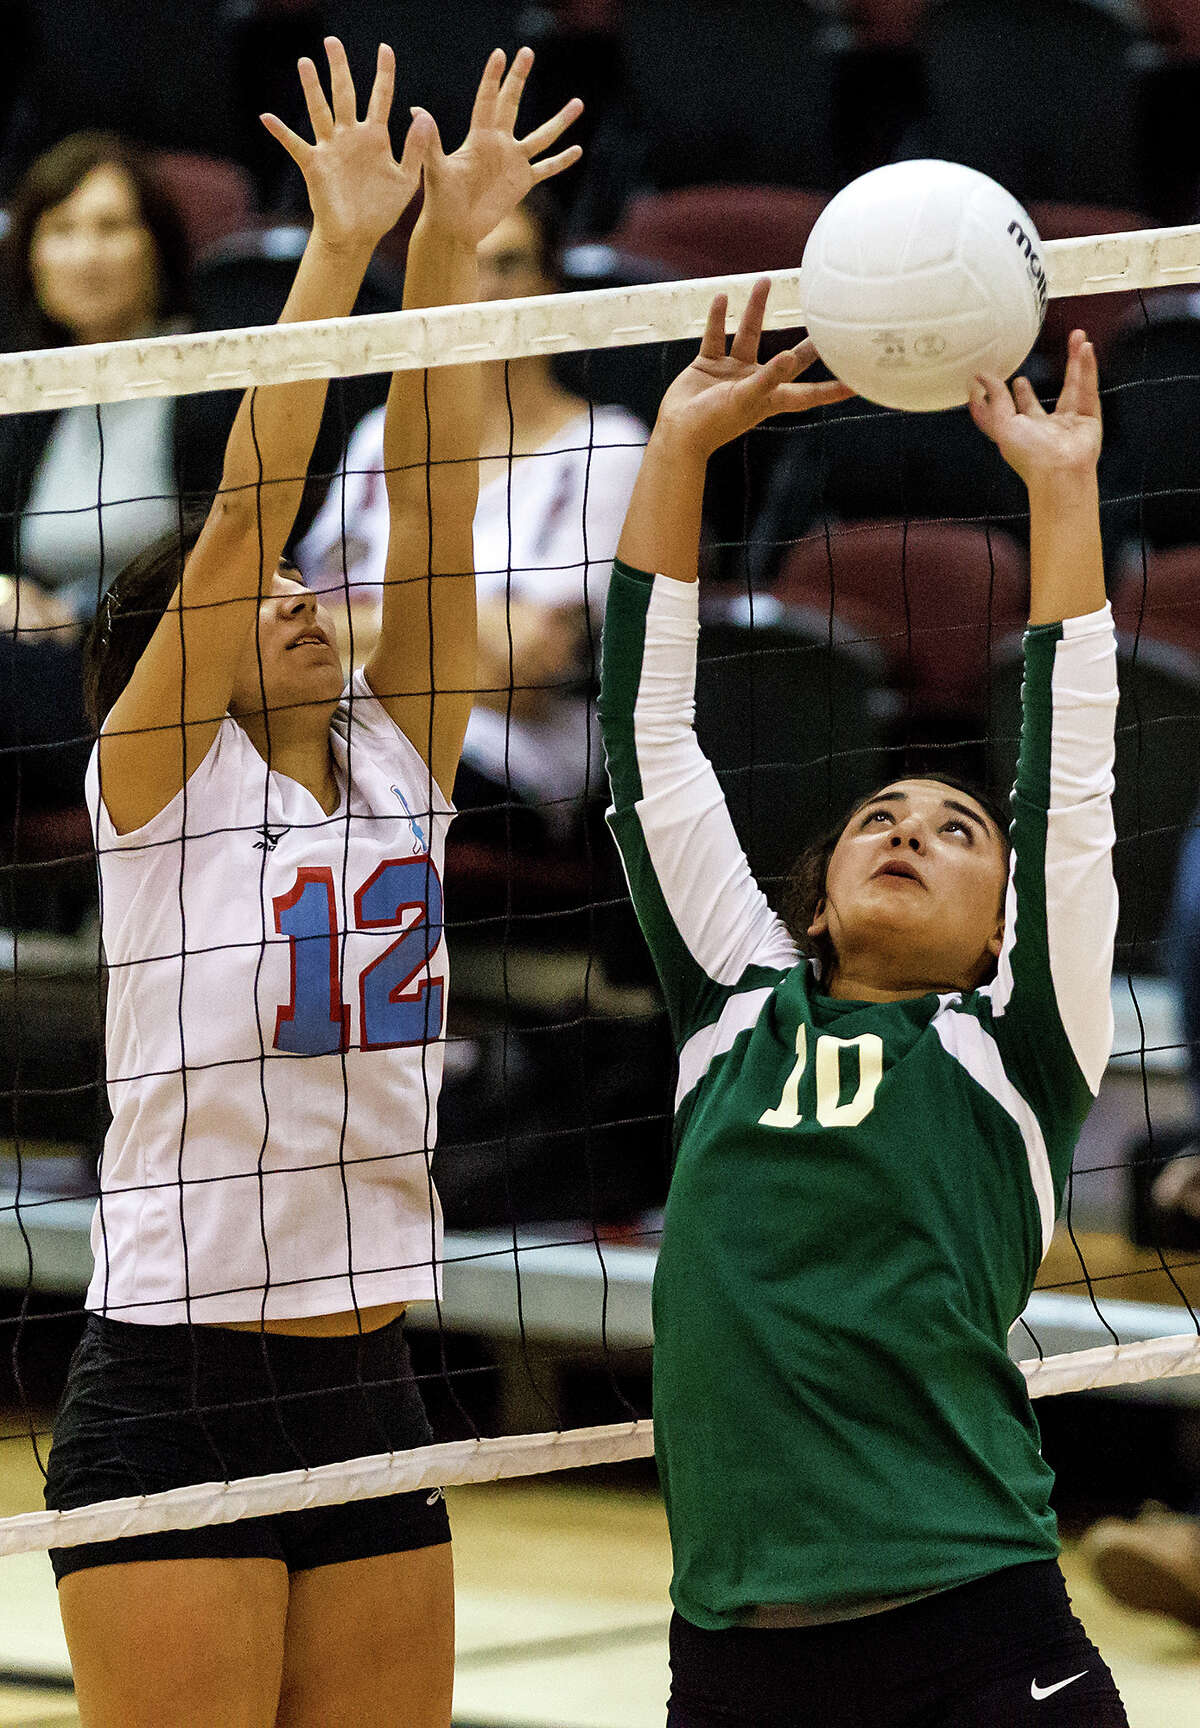 Incarnate Word's Lauren Guerra (right) sets the ball at the net as Antonian's Aly Gorday defens during their match at the McDermott Center on Oct. 10, 2012. Incarnate Word won the match 25-18, 25-15, 25-18. MARVIN PFEIFFER/ mpfeiffer@express-news.net